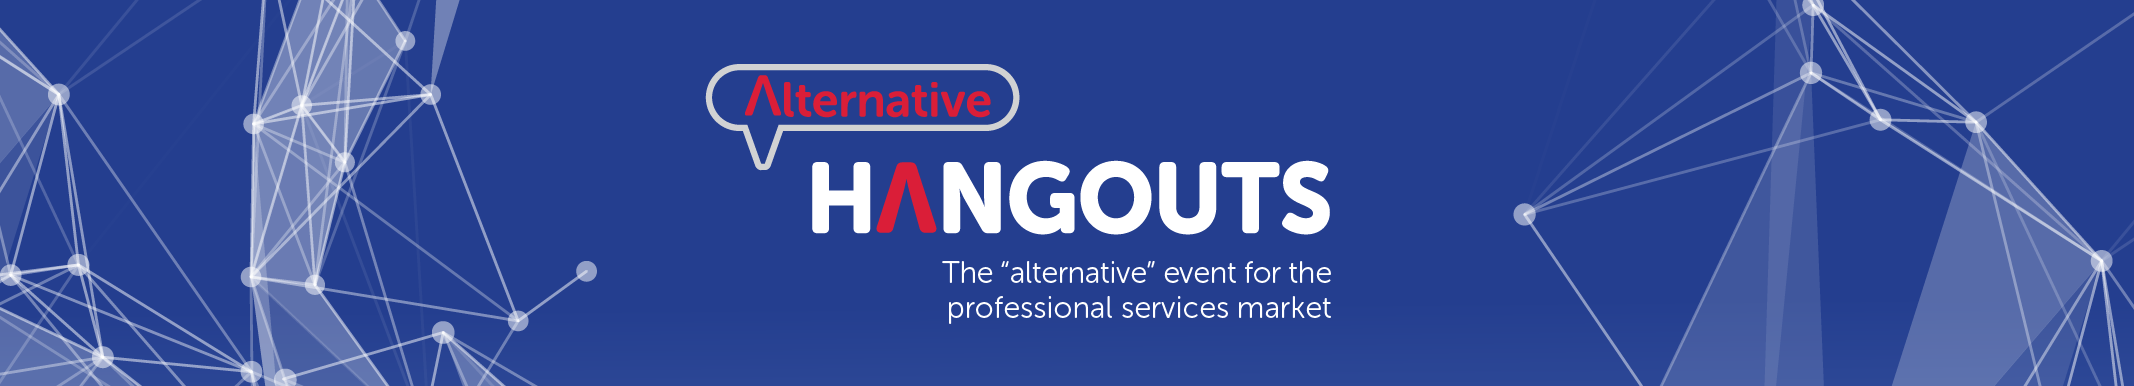 Alternative-Hangouts-Banner